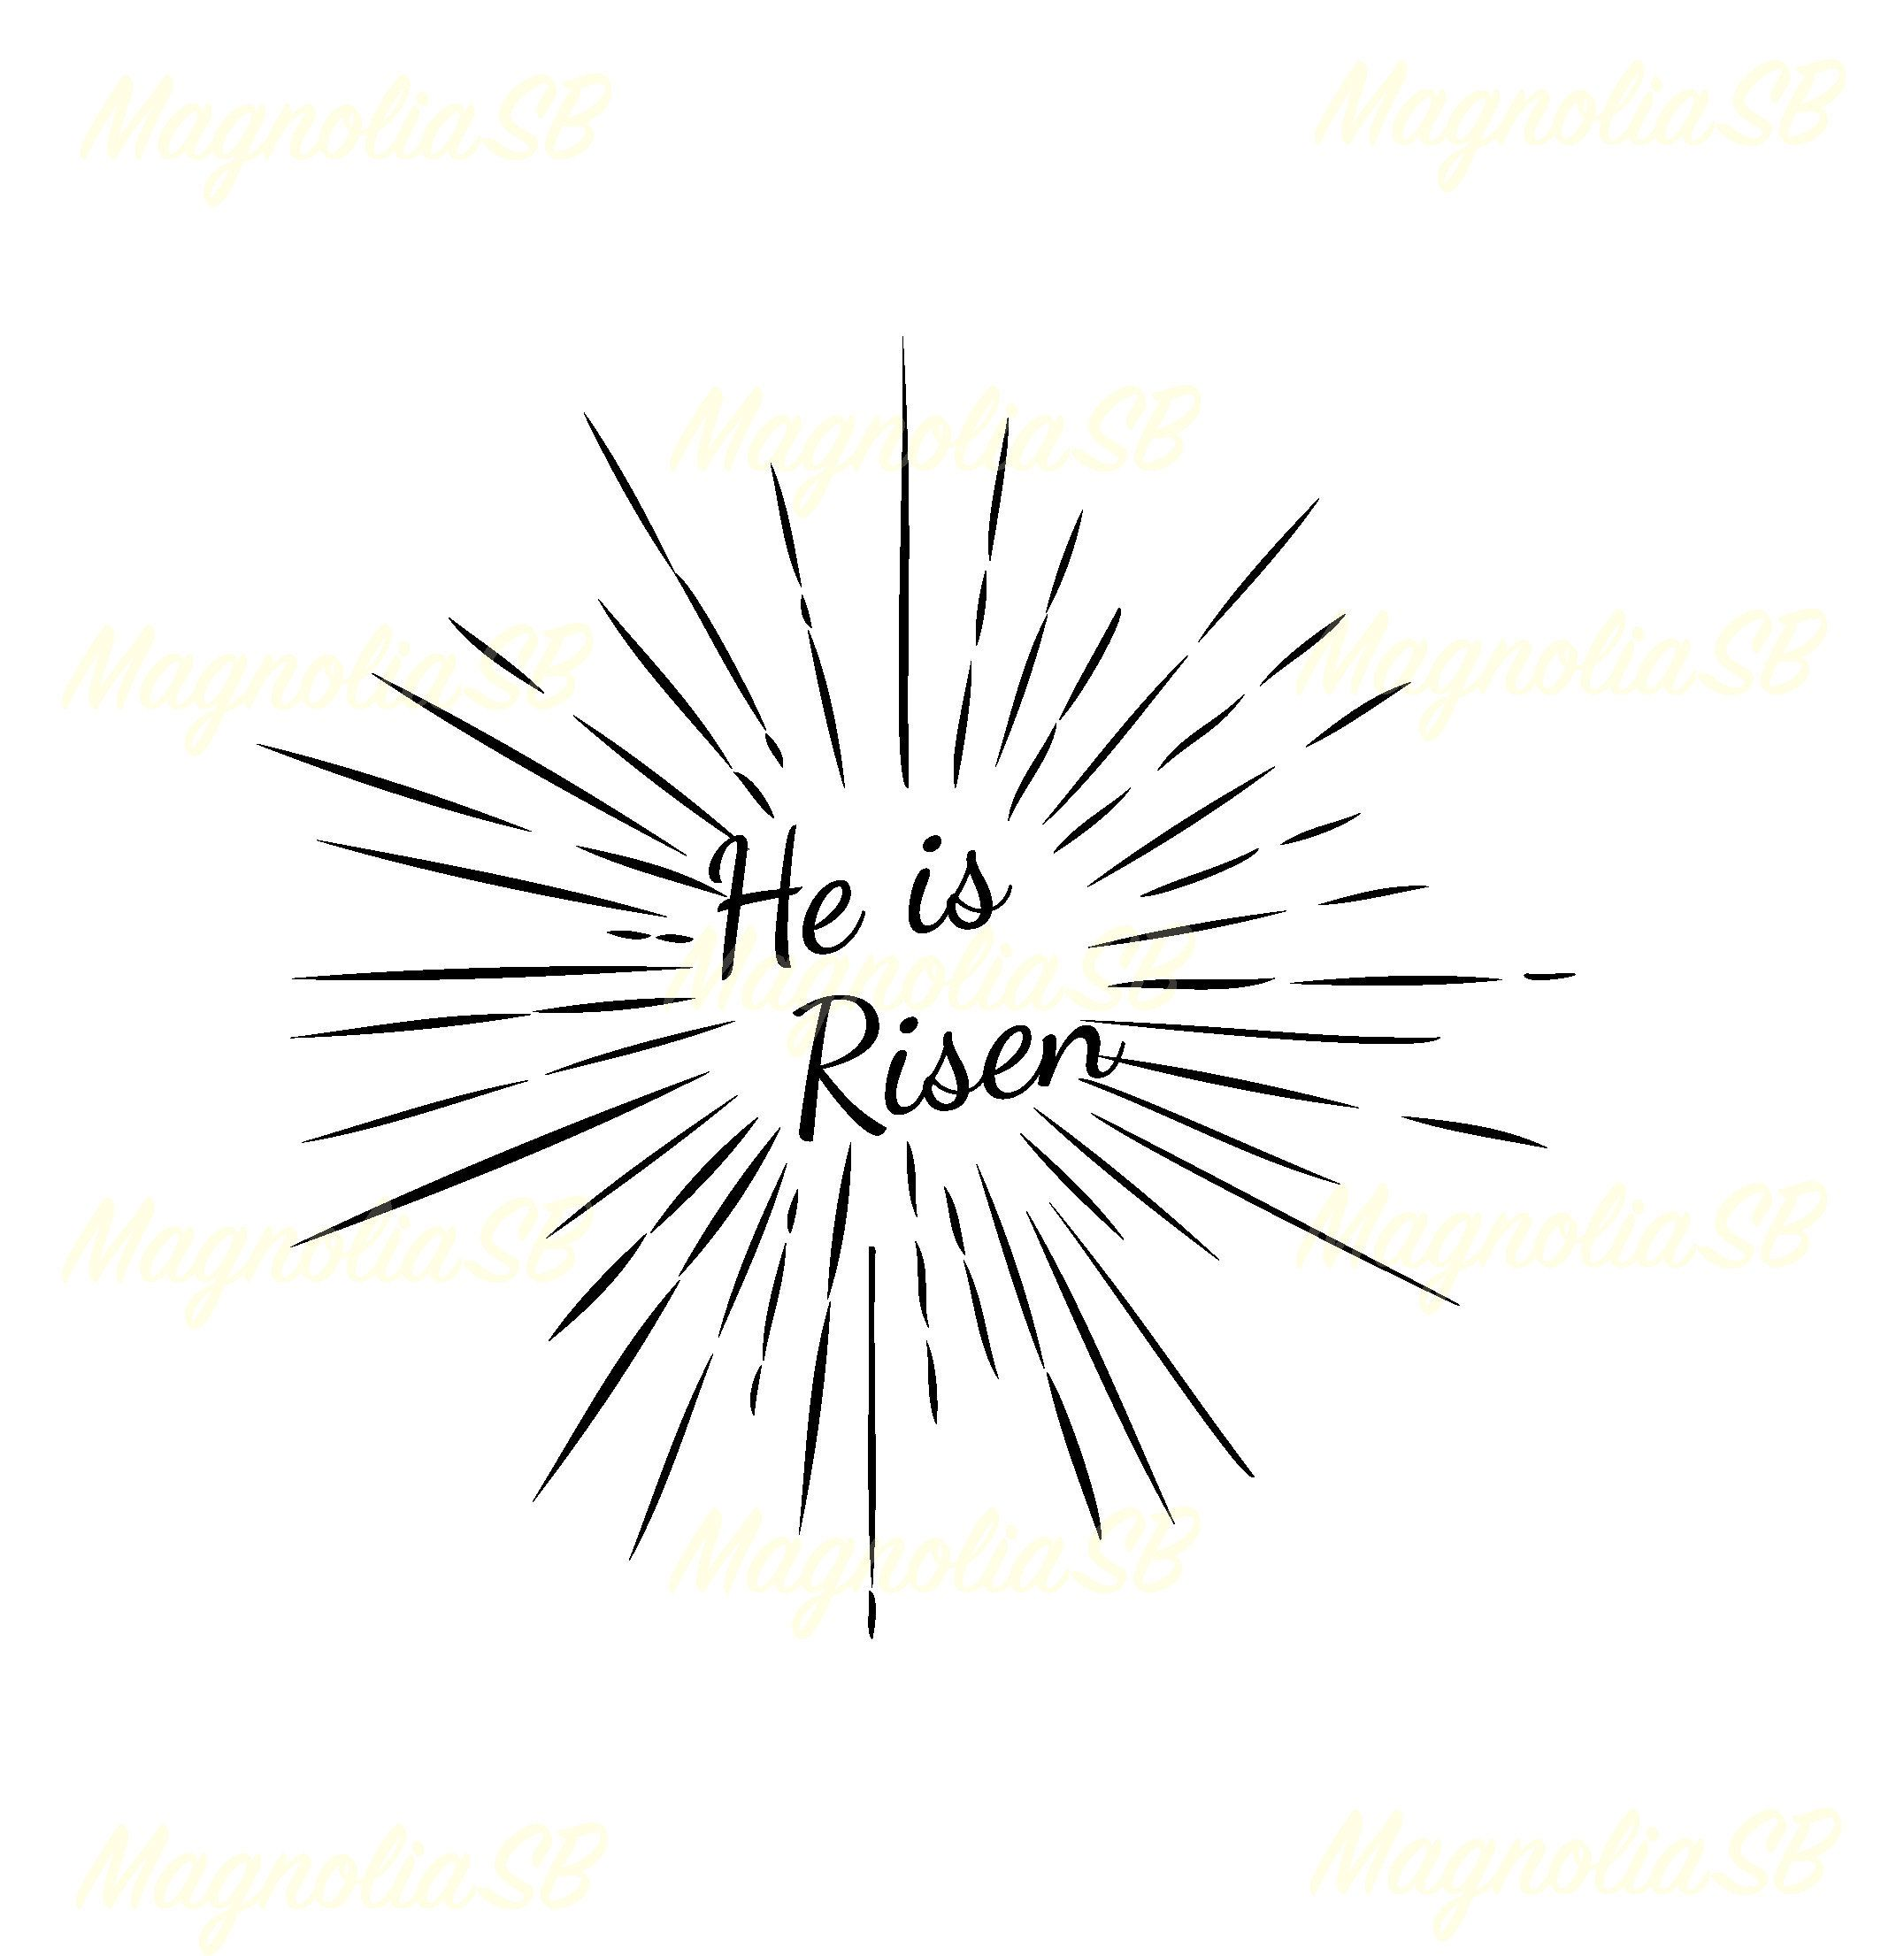 small resolution of he is risen svg he is risen dxf he is risen clipart cutting he is risen vector he is risen shape easter rays he is risen silhouette